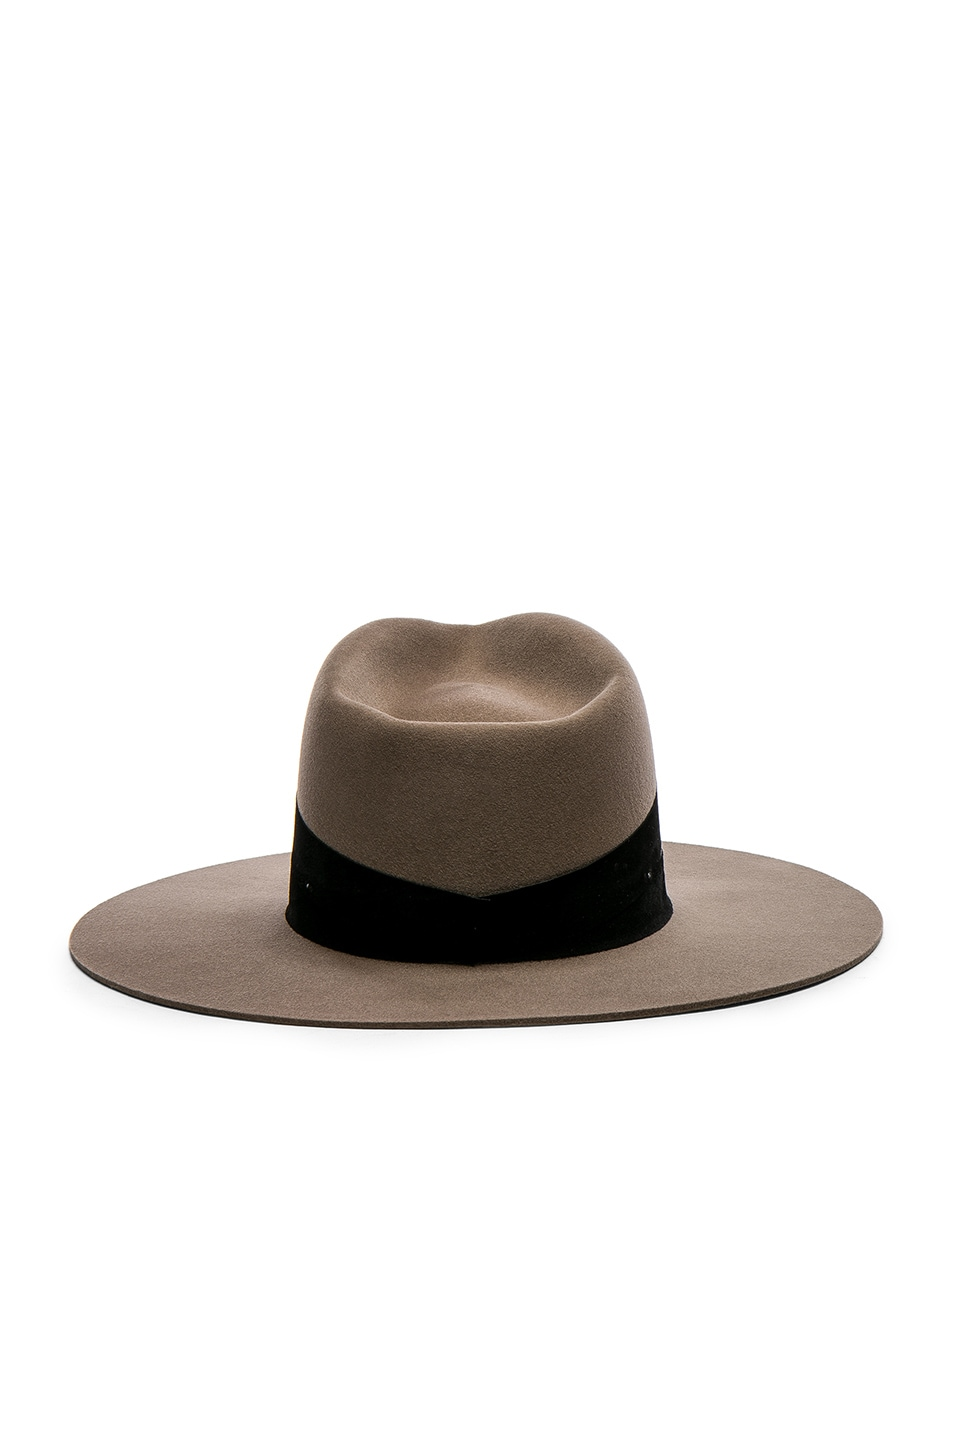 Image 4 of Janessa Leone Un Fedora Hat in Dark Sand